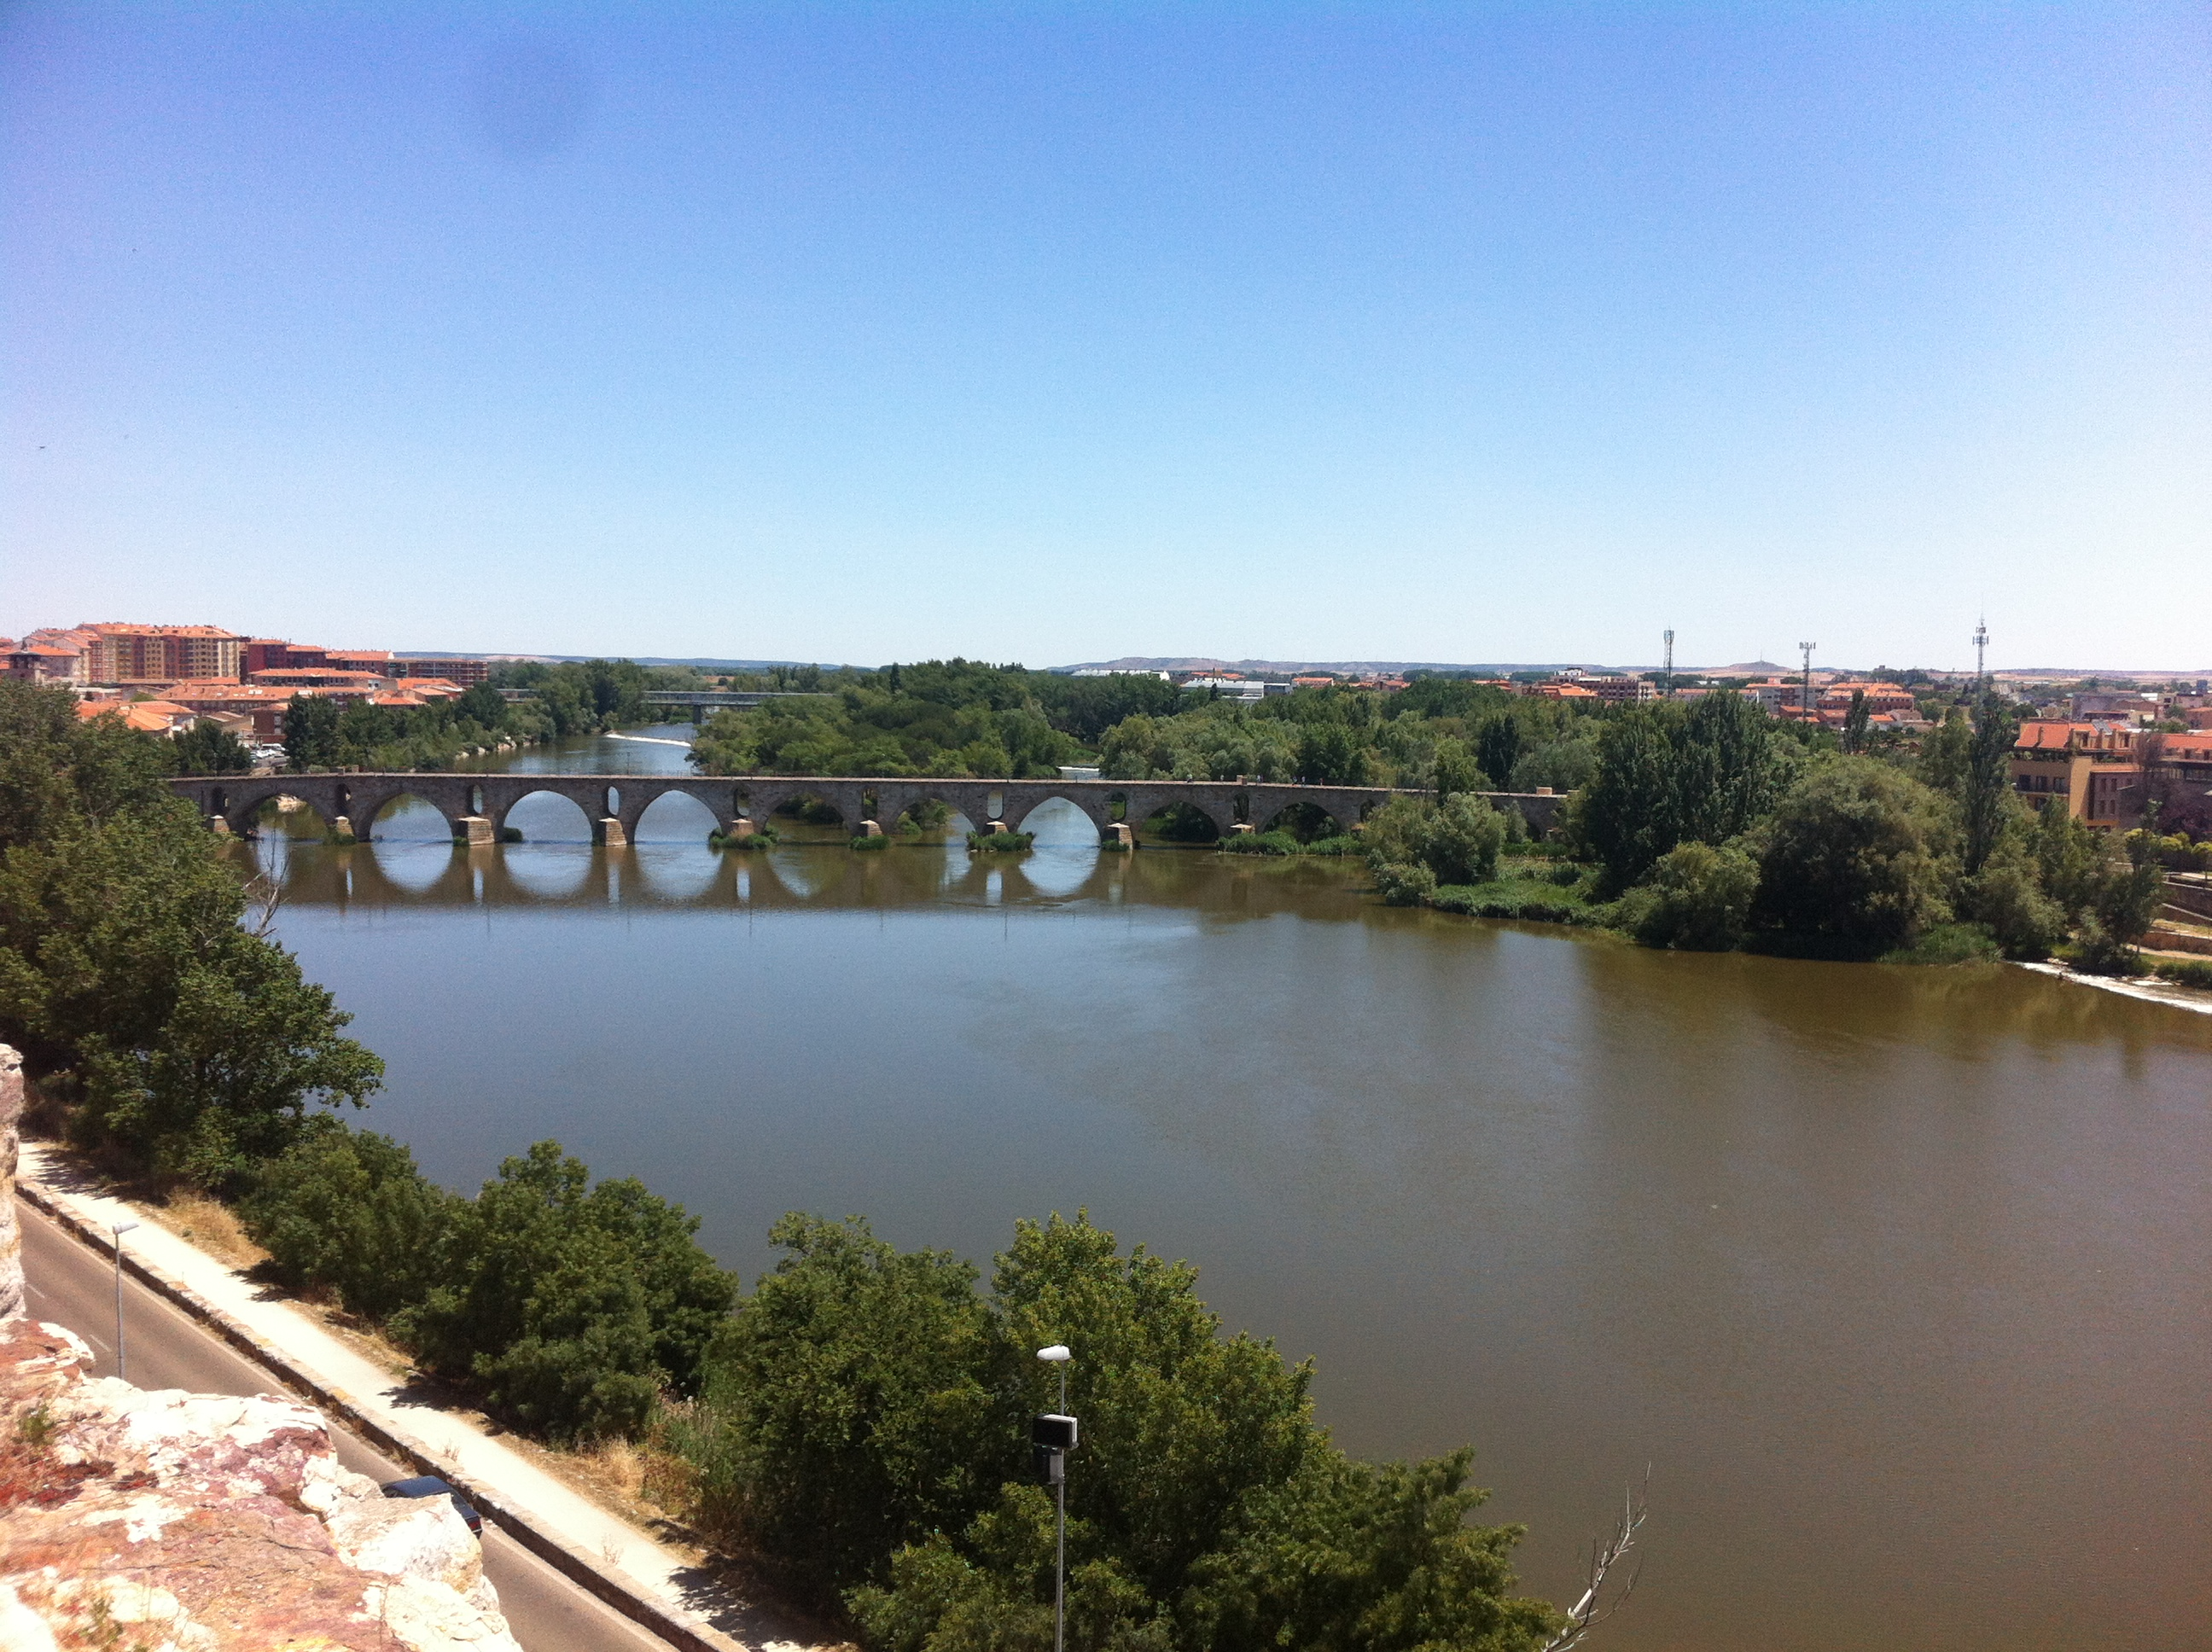 bridge at the river Duero